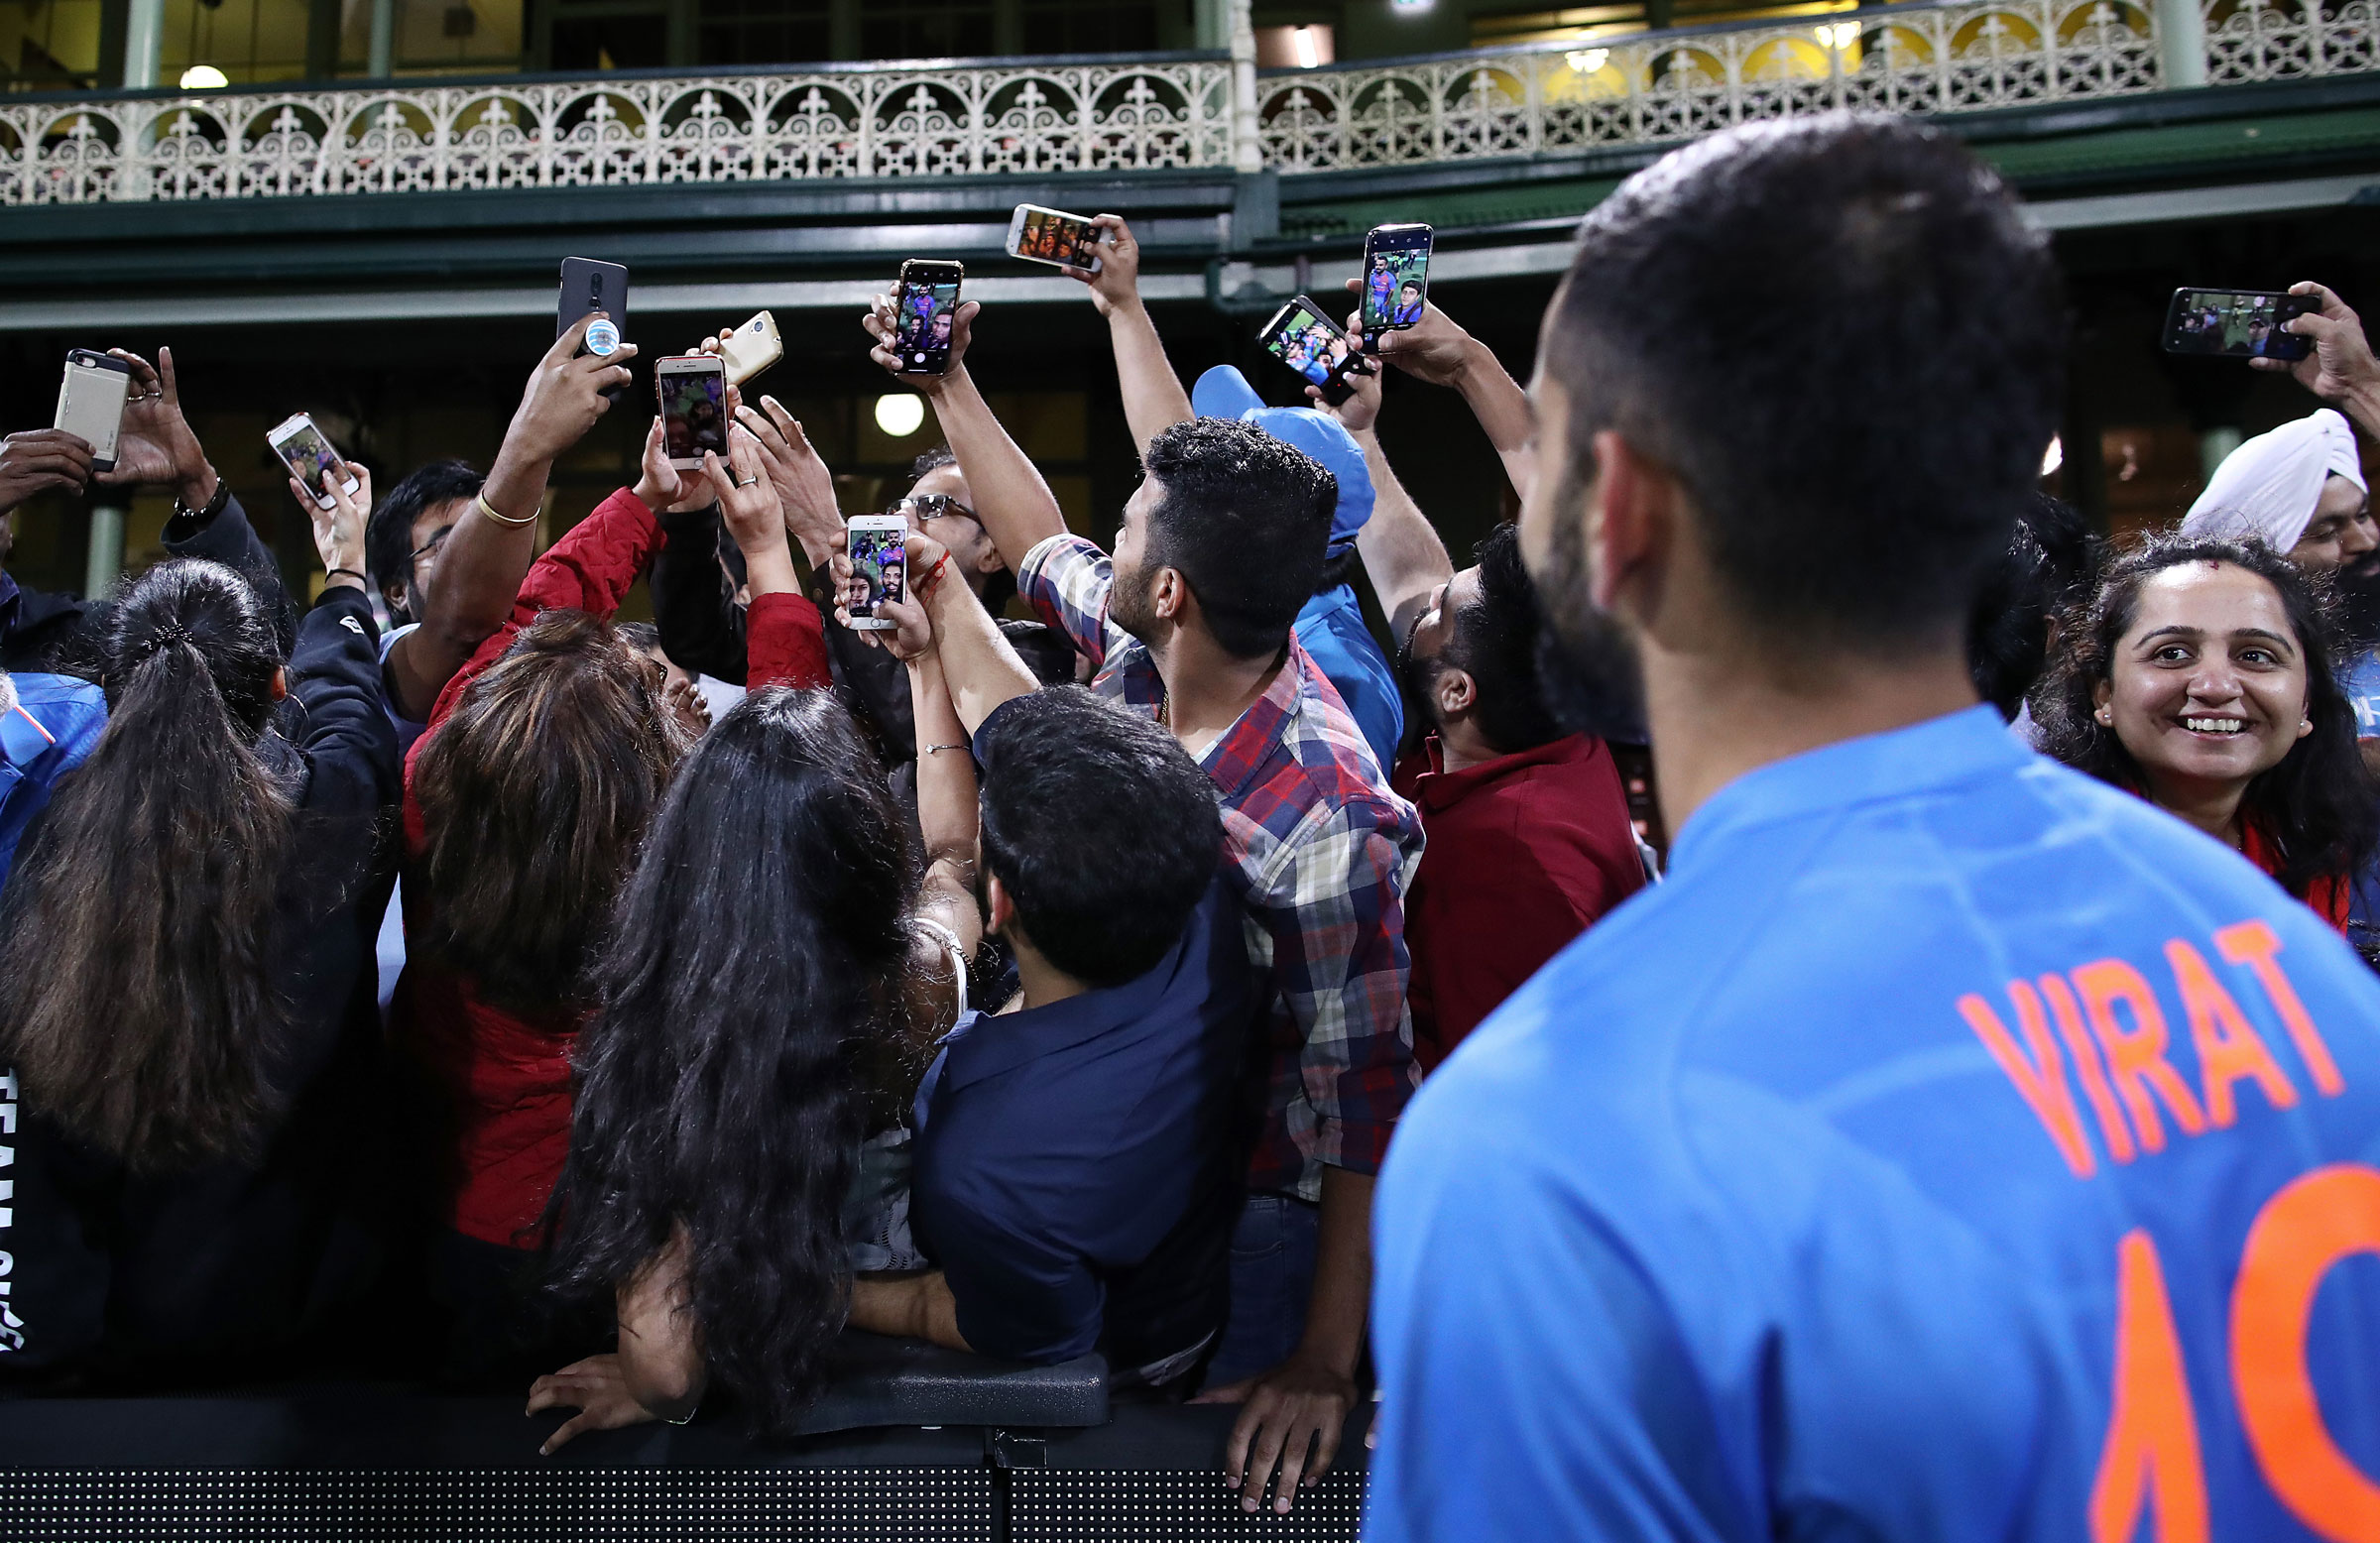 Kohli poses for selfies with fans in Australia // Getty Images